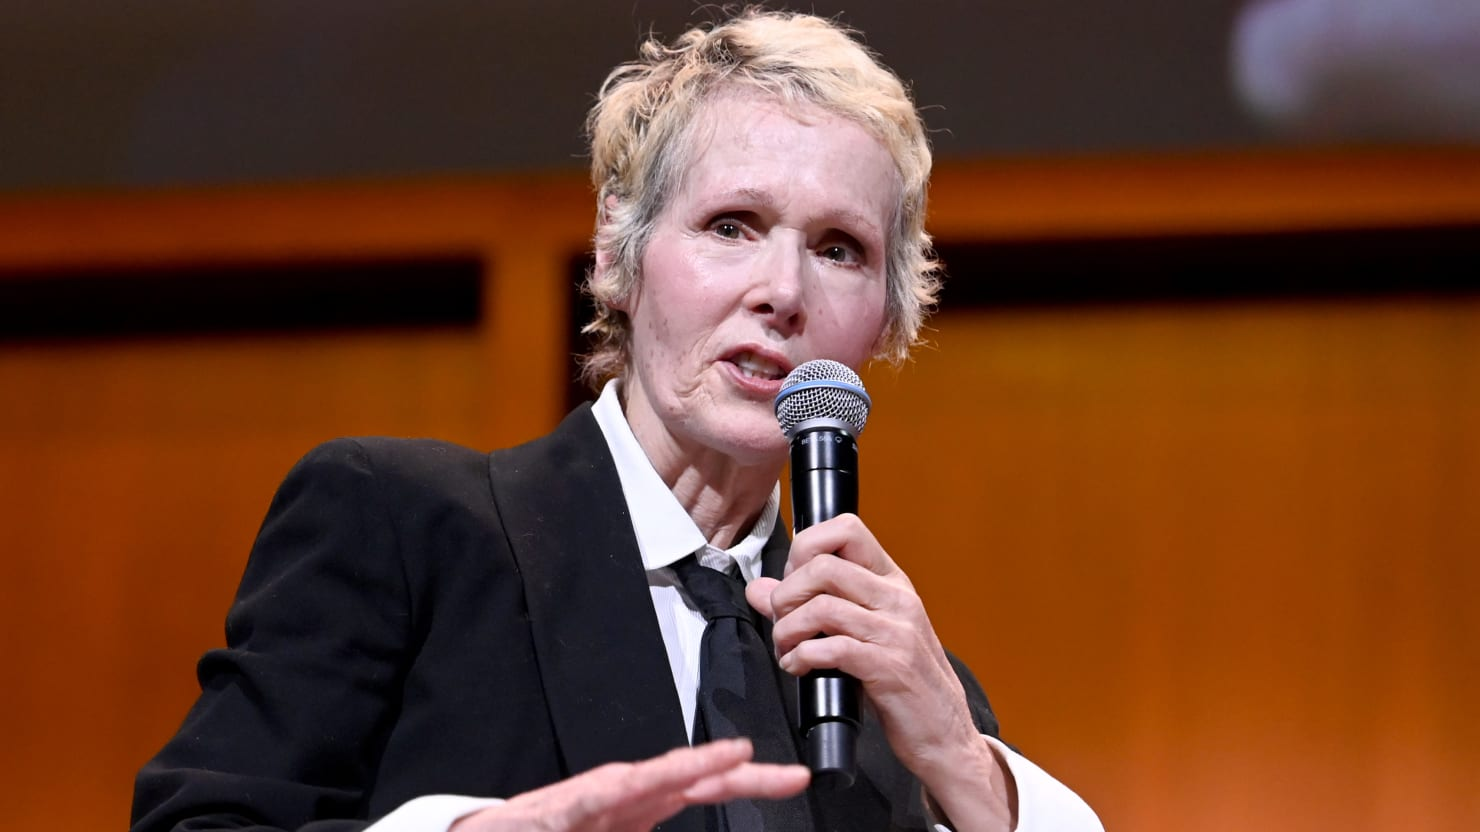 E. Jean Carroll Claims Donald Trump Is 'Cherry-Picking' Court Cases as His Lawyers Ask for Delay in Lawsuit